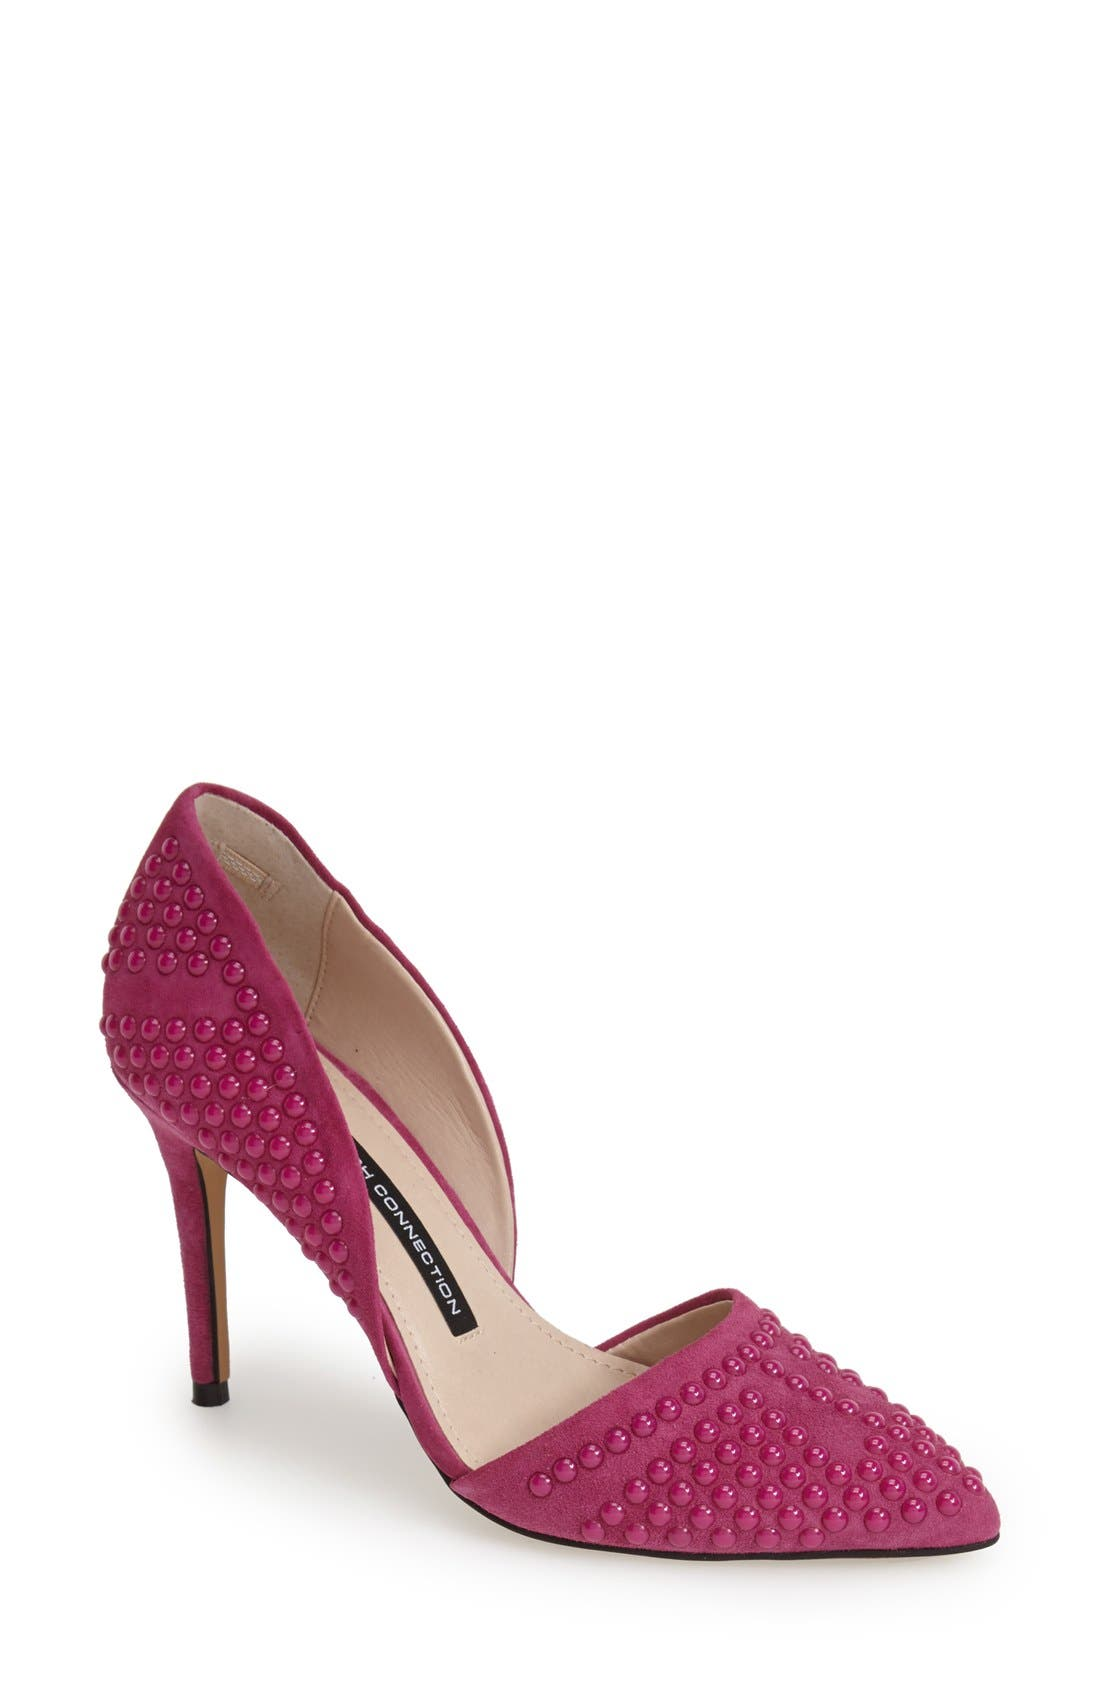 Main Image - French Connection 'Ellis' Studded Pointy Toe Pump (Women)